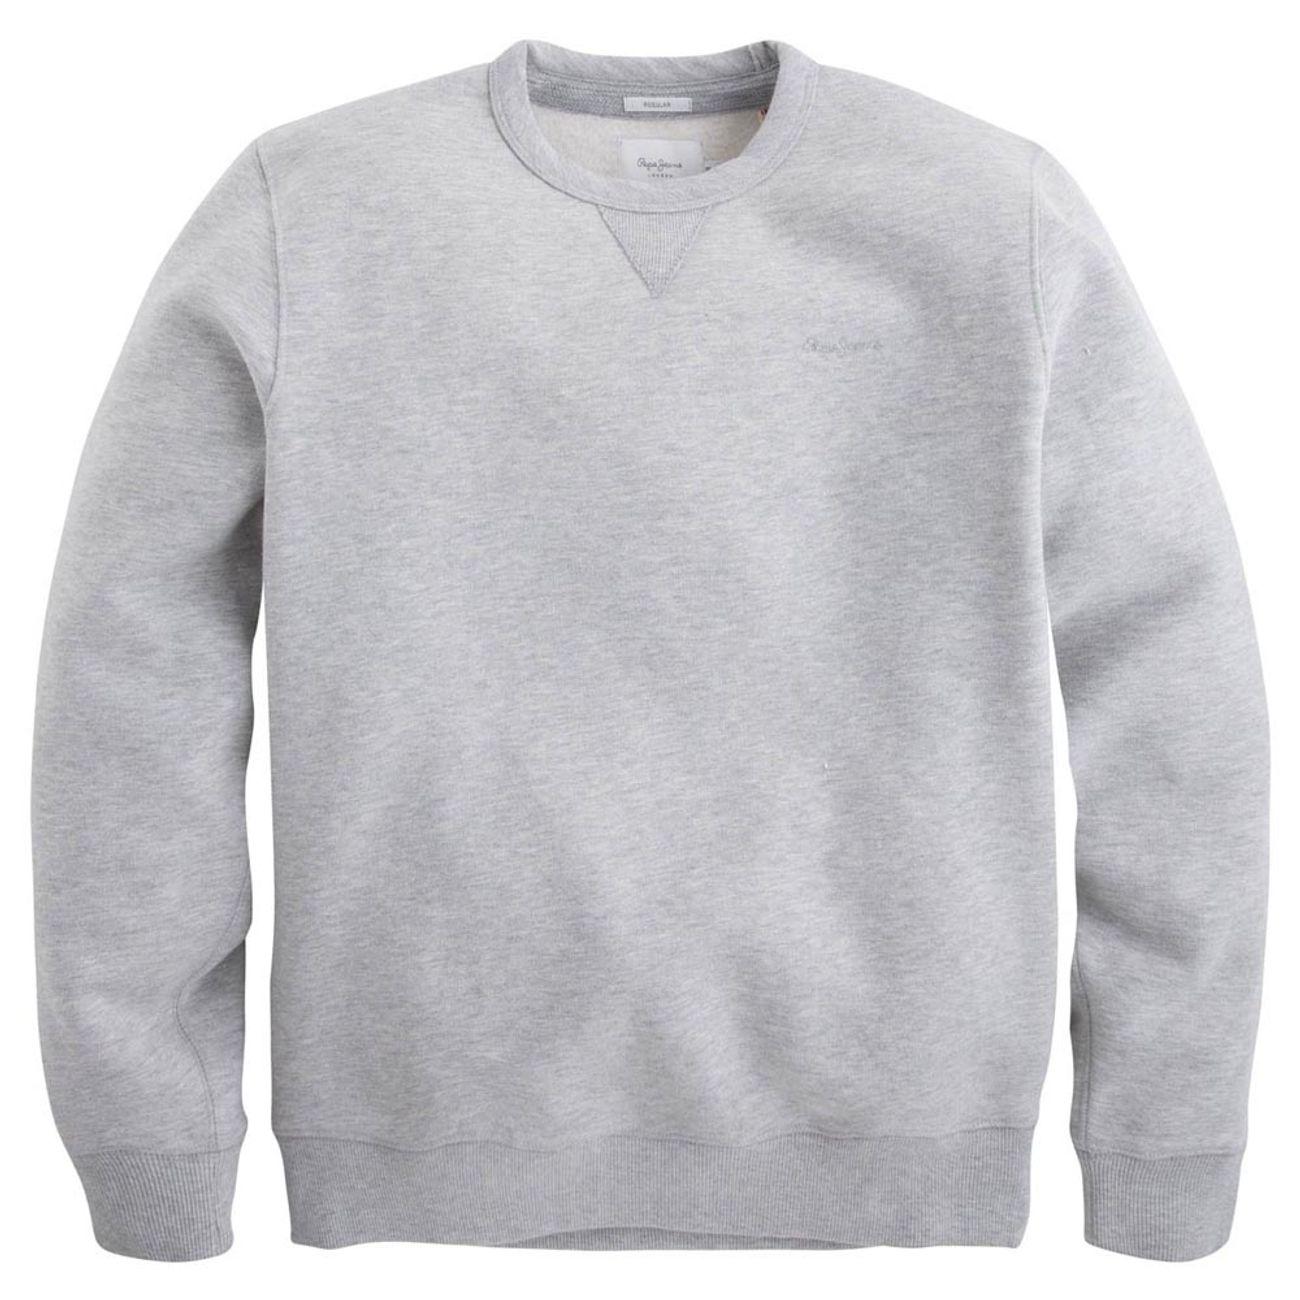 Pepe Jeans ModeLifestyle Homme Neck Crew WHIED29